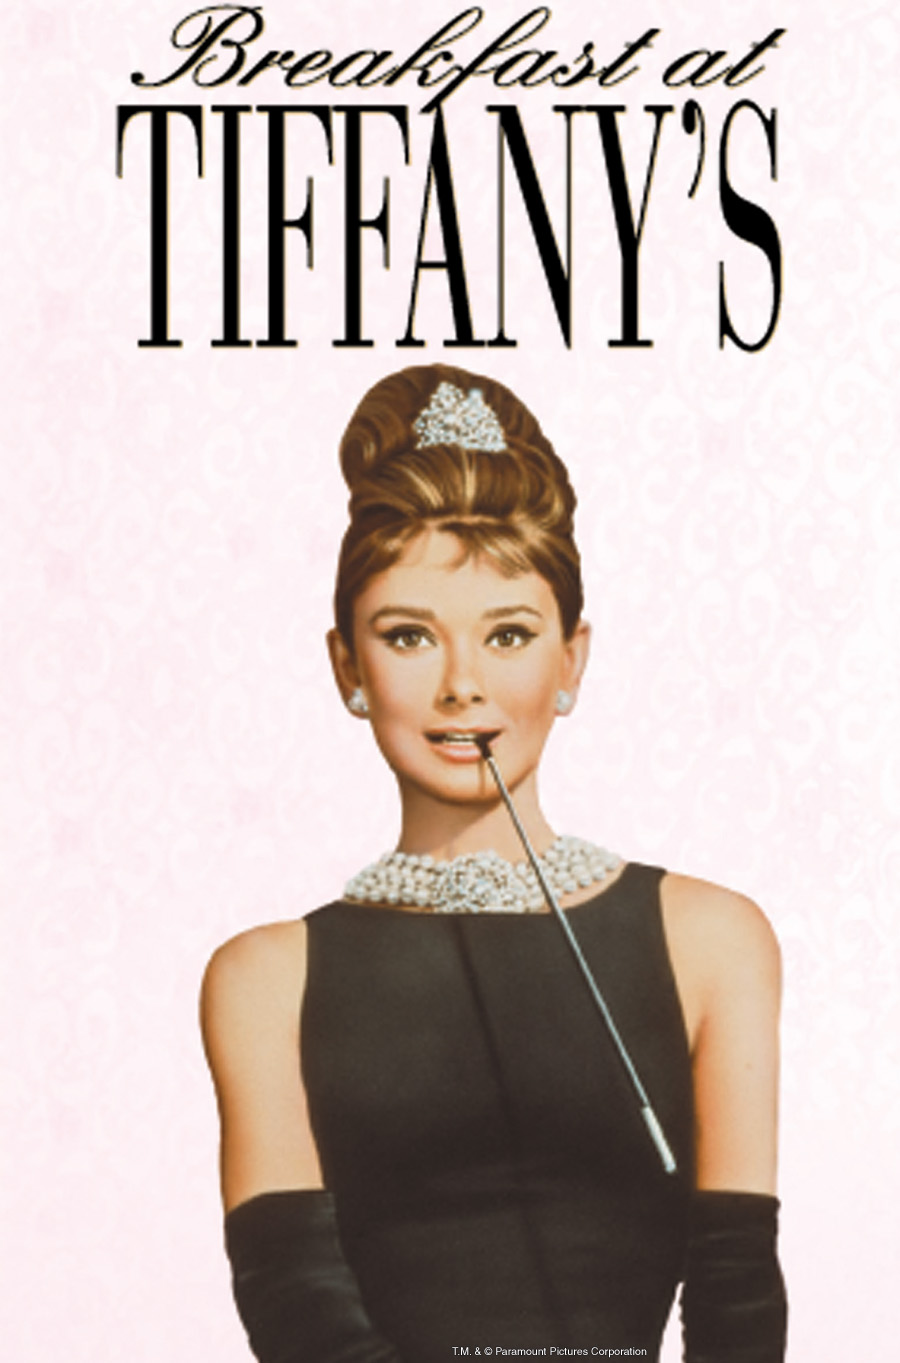 Audrey Hepburn Birthday Breakfast At Tiffanys likewise Mickey Rooney Entertainment Giant Or Racist Revised And Expanded moreover Audrey Hepburn Canvas as well Golden Globe Red Carpet Starlets Inspired Black Luxury Swimwear 2 moreover Audrey Hepburn Sunglasses From Breakfast At Tiffanys. on audrey hepburn breakfast at tiffanys